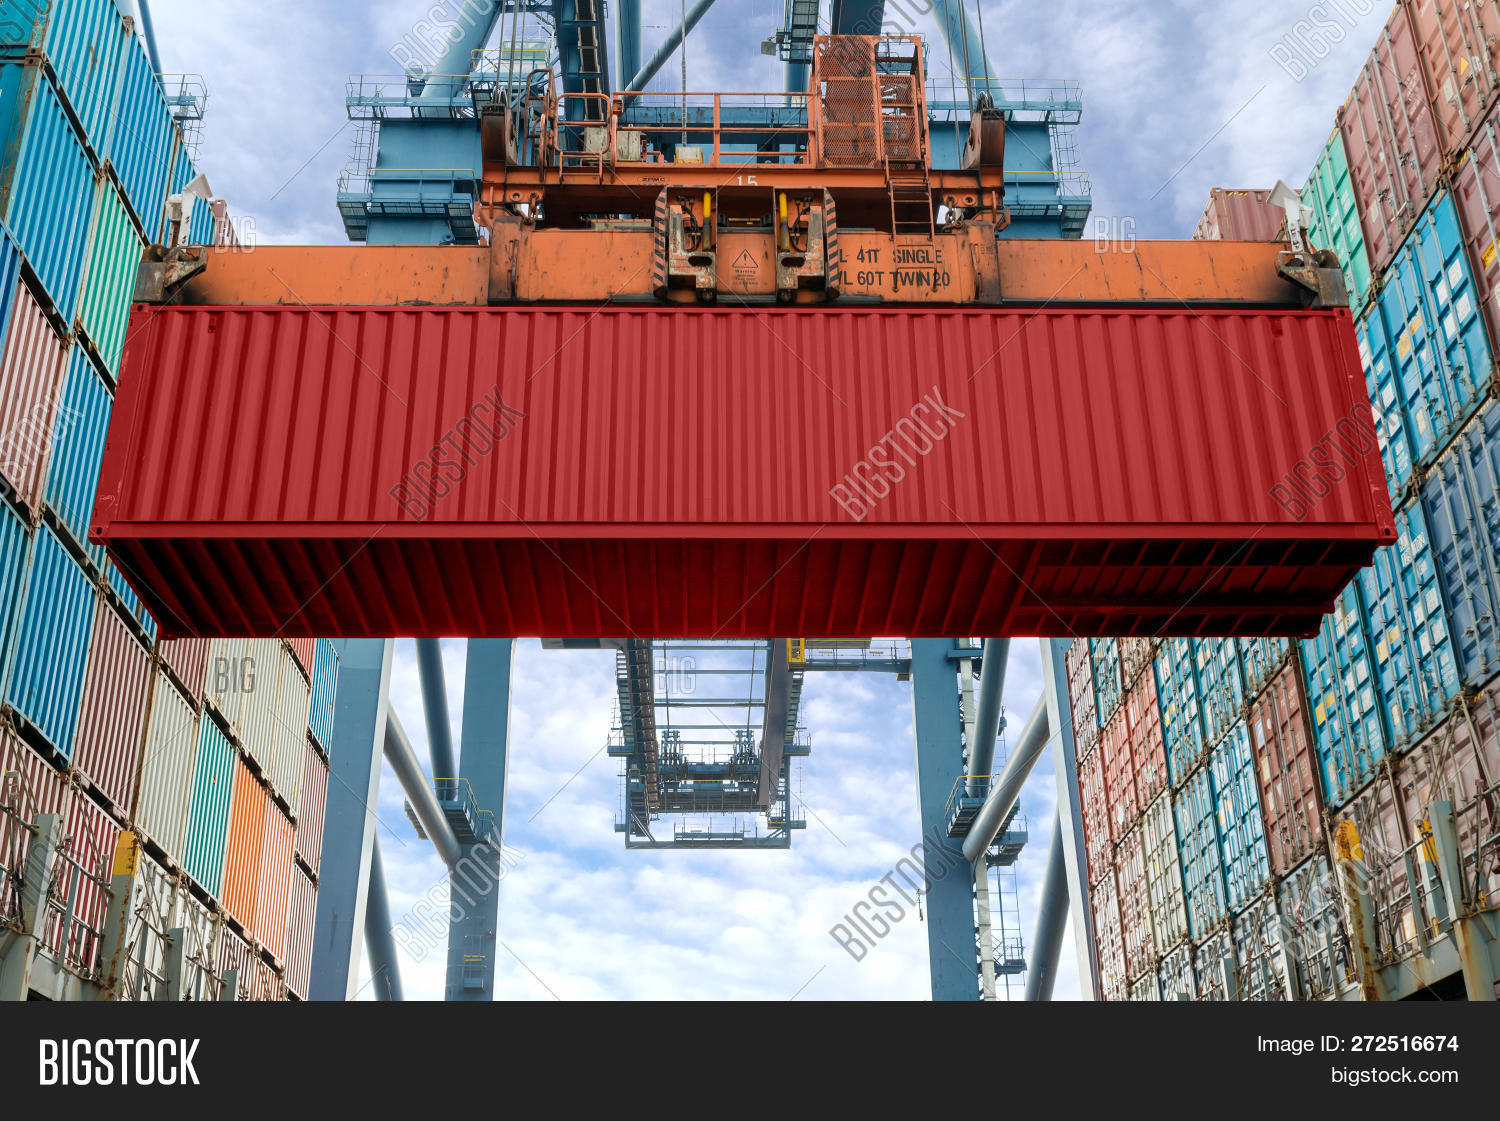 Industrial Crane Loading Containers In A Cargo Freight Ship. Container Ship In Import And Export Bus